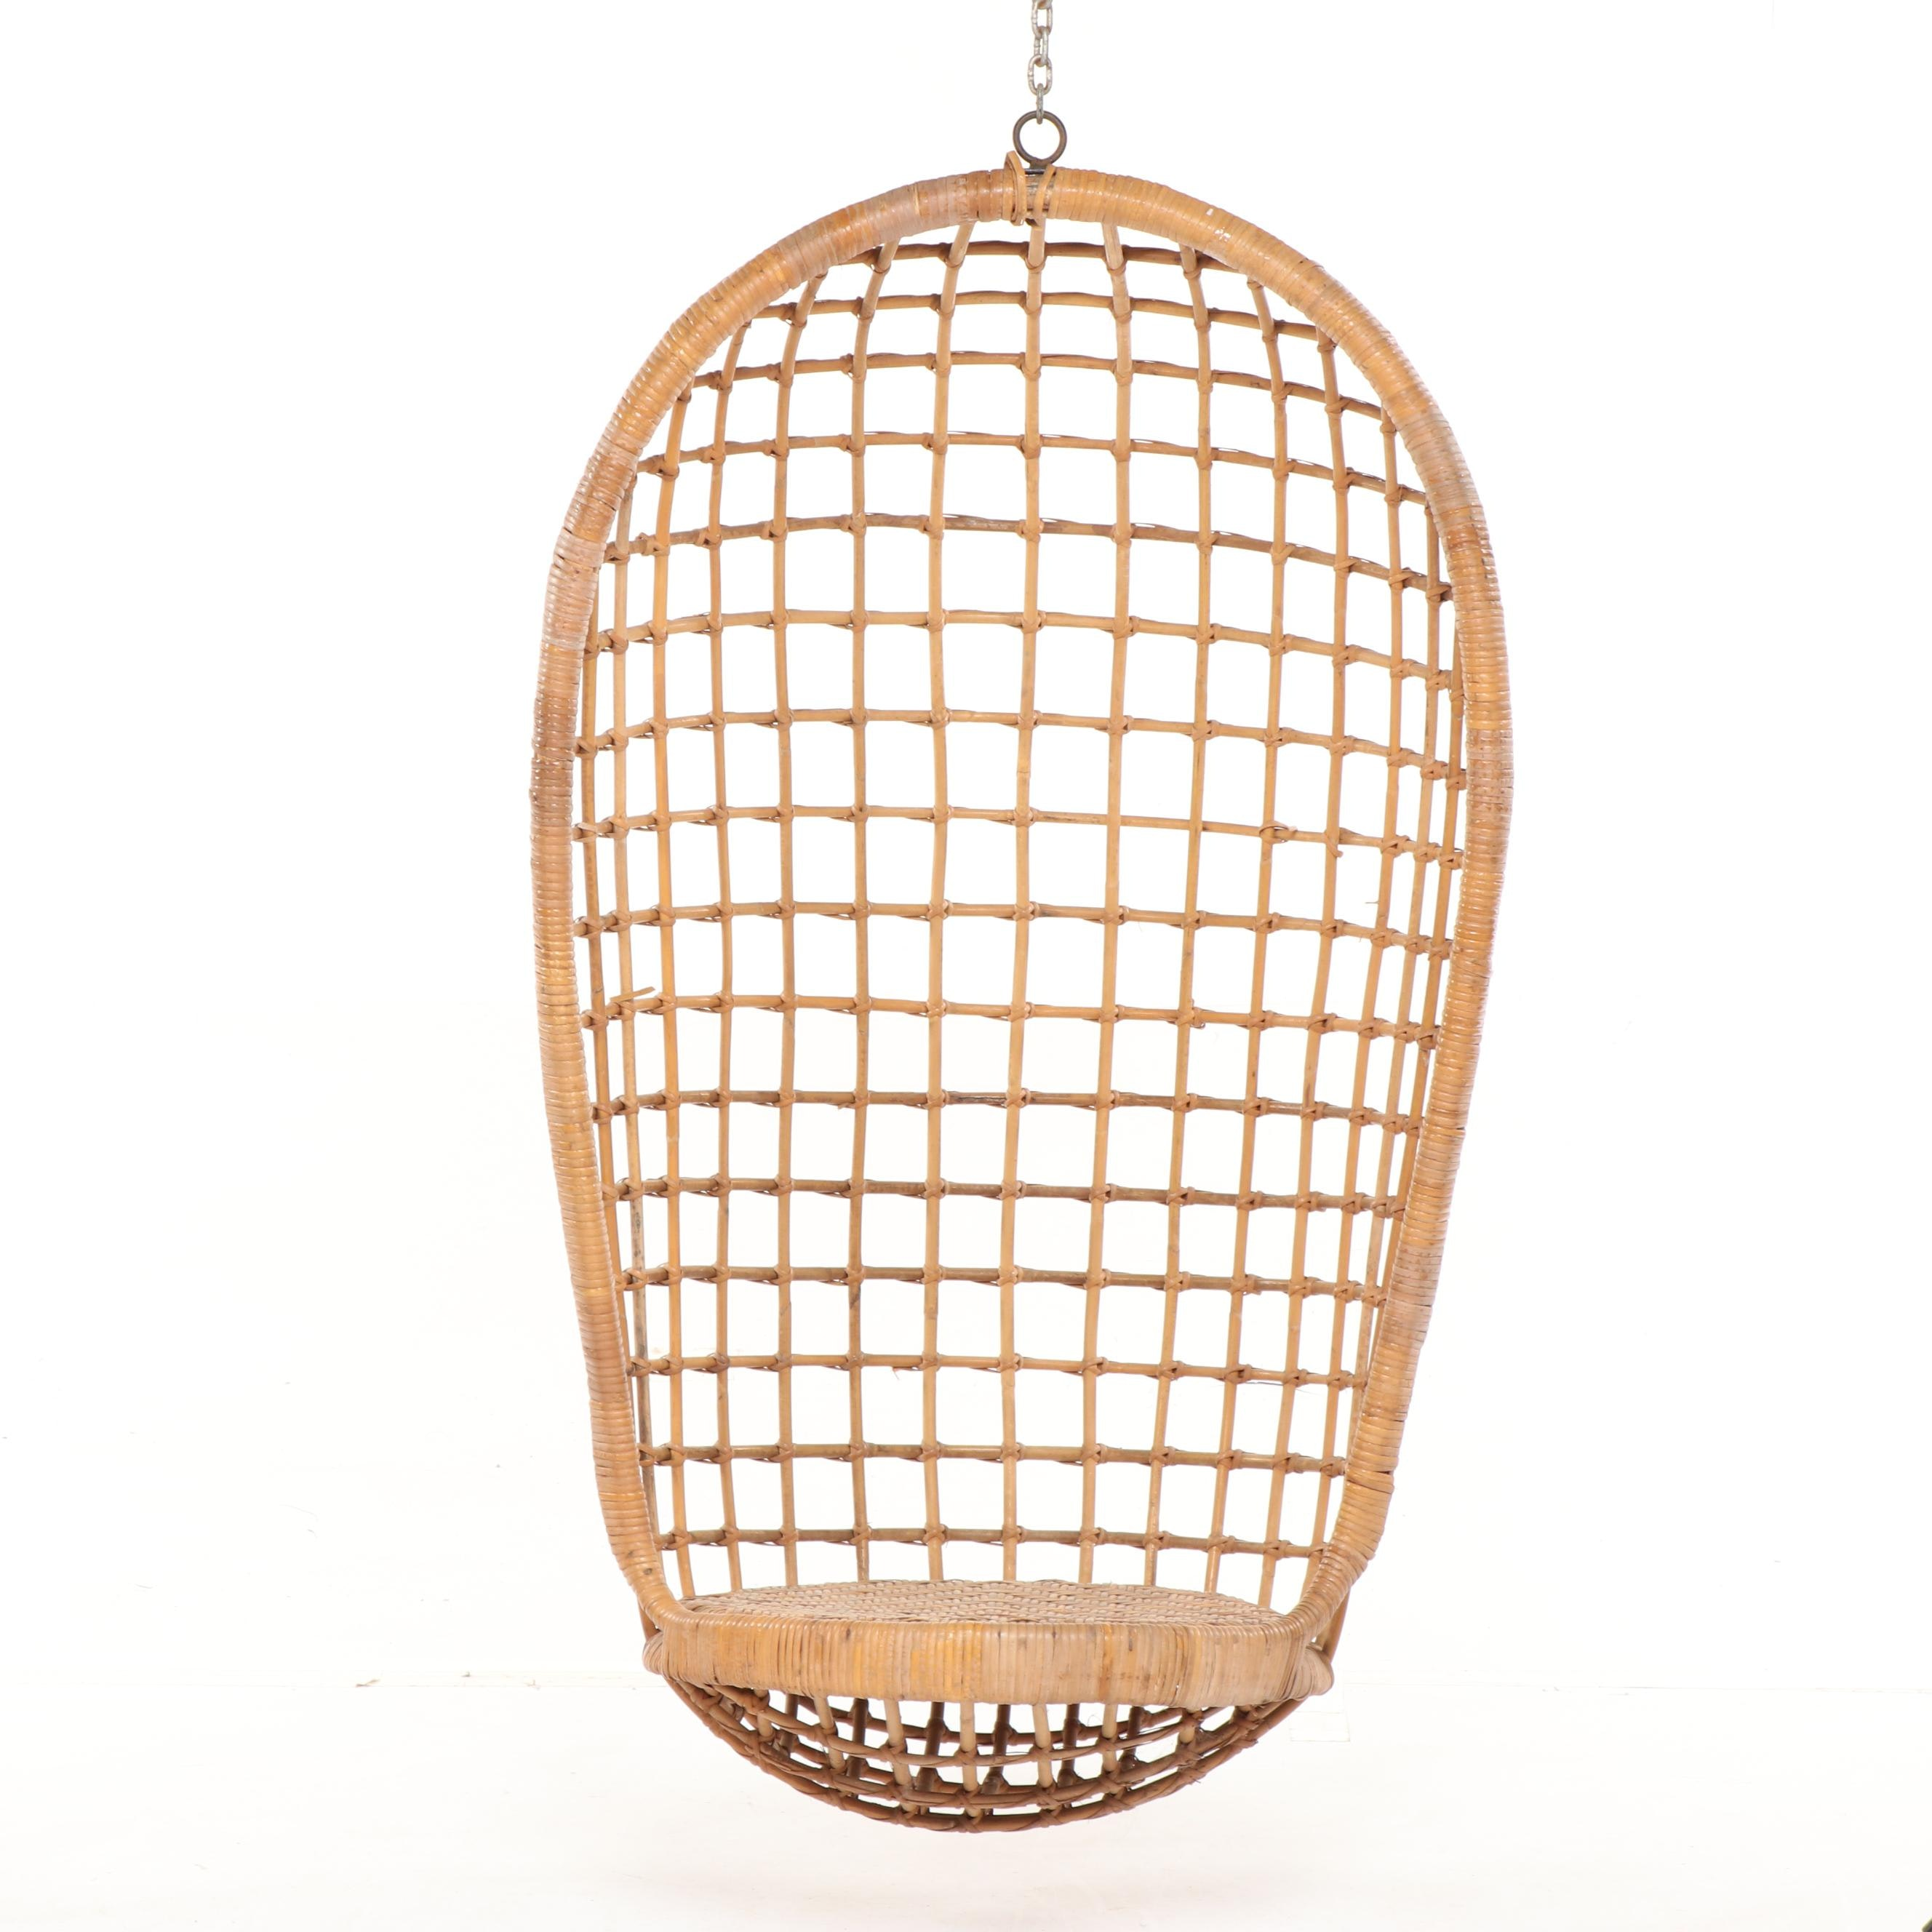 Mid Century Modern Rattan and Wicker Weave Hanging Chair, Mid-20th Century